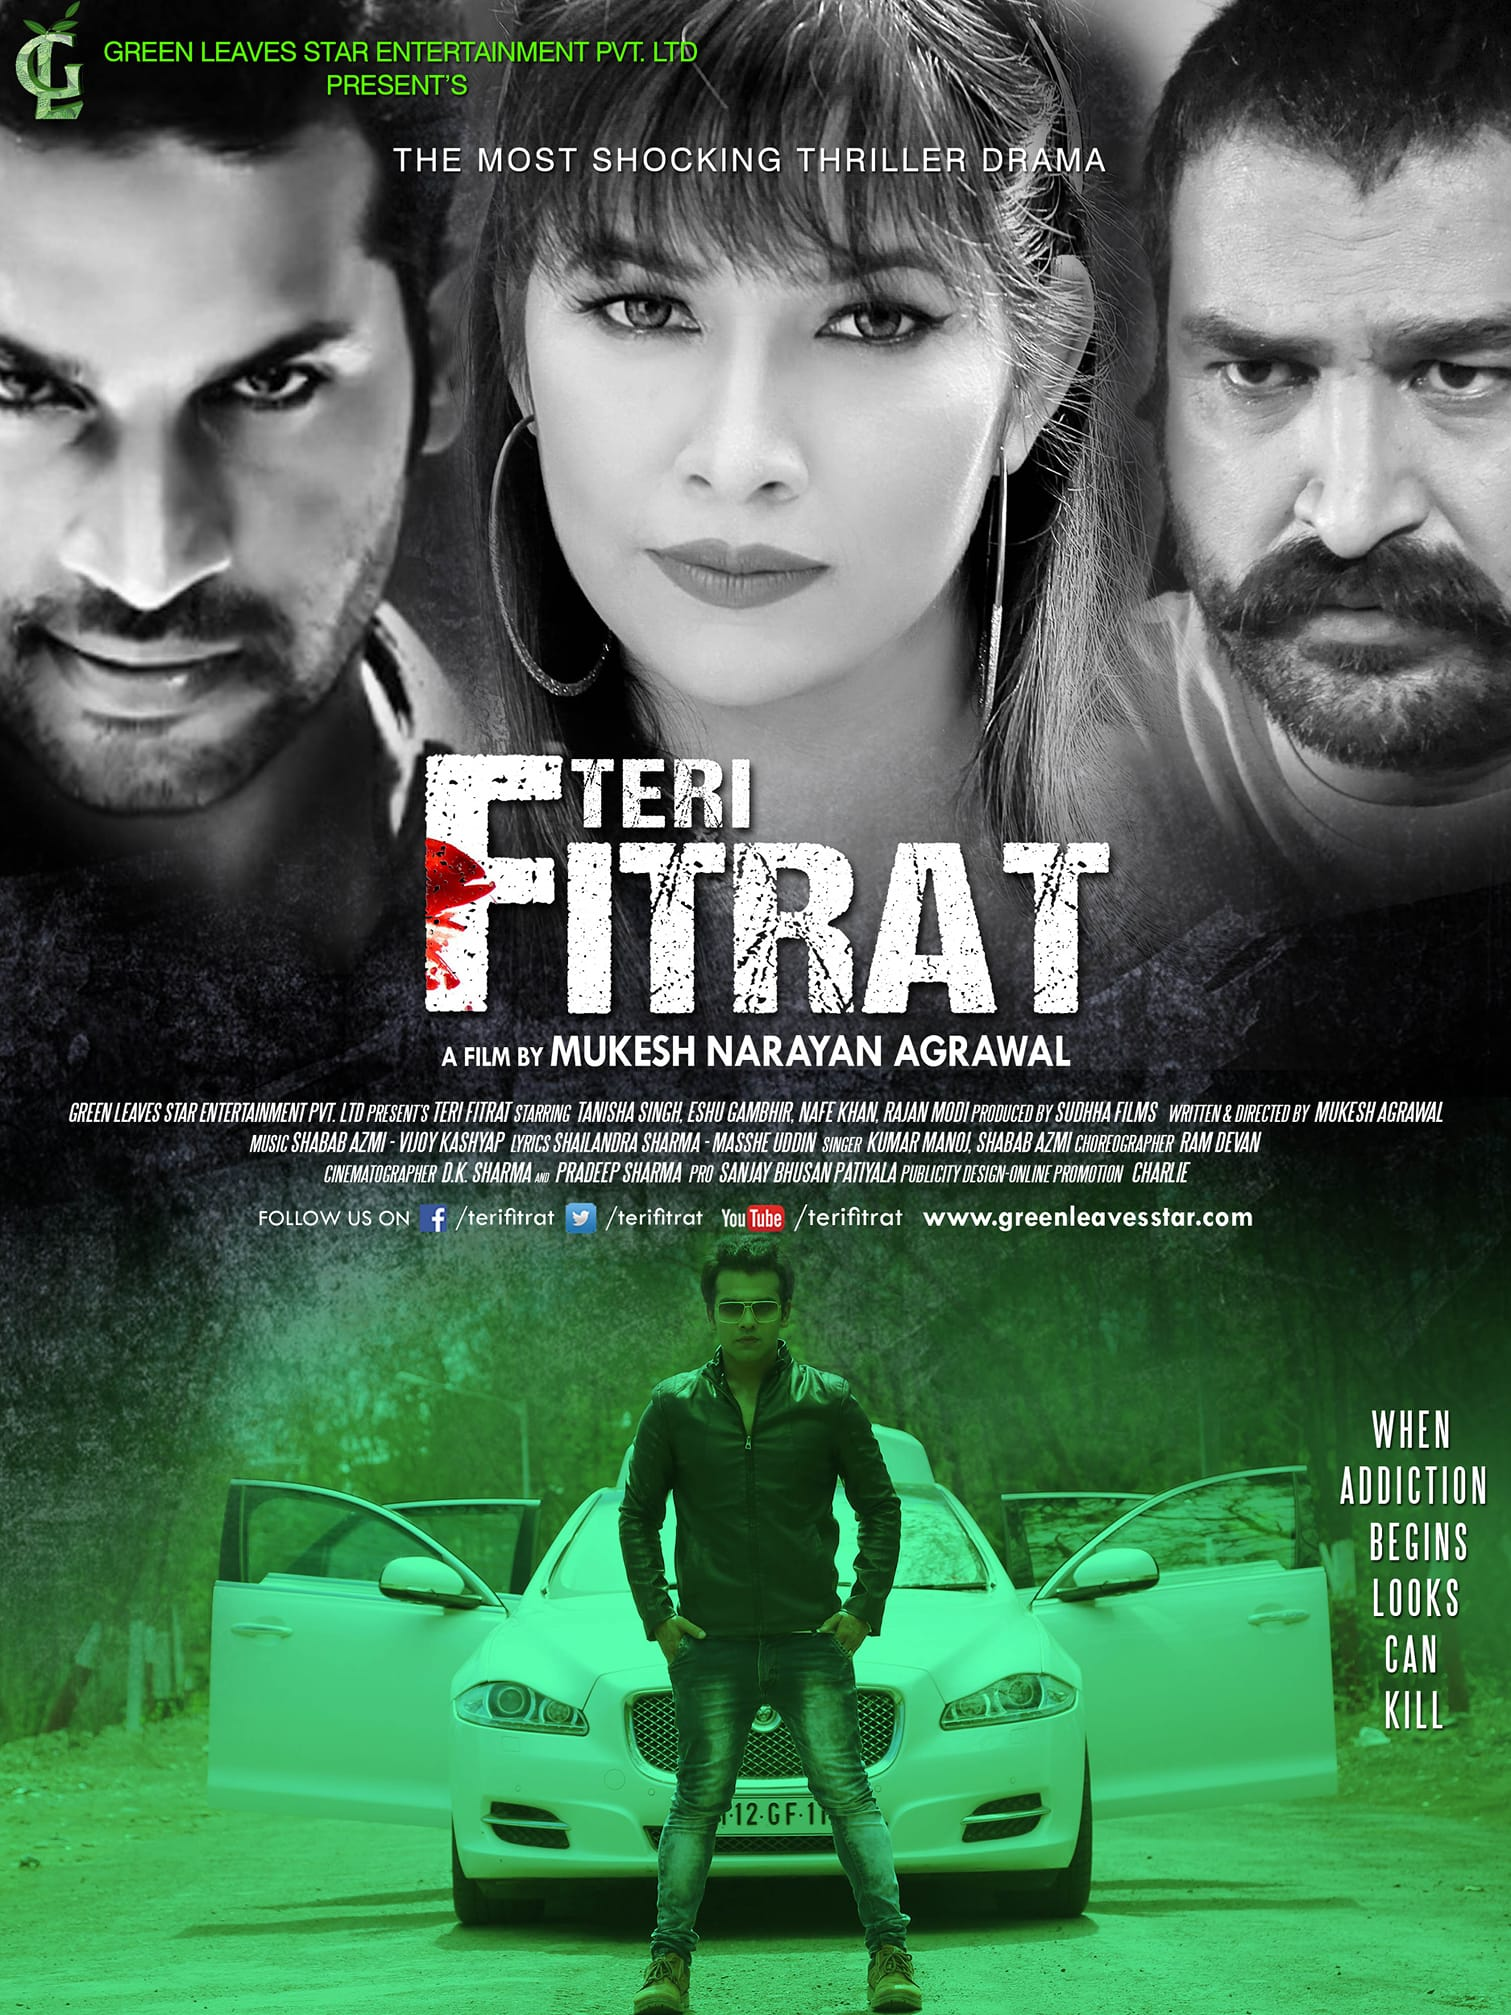 18+ Yeh Hai Teri Fitrat 2020 Hindi 1080p HDRip 1.6GB Download